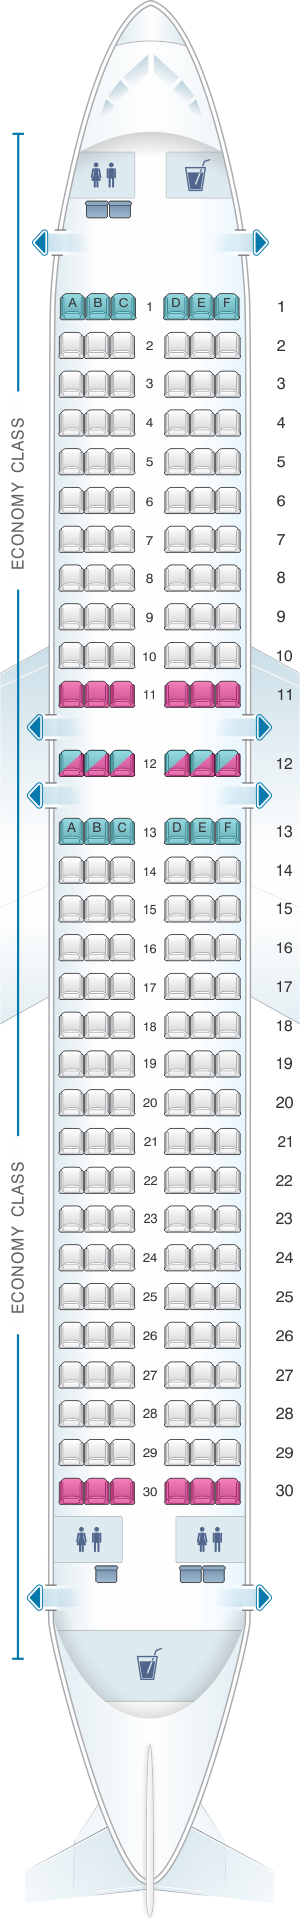 Seat map for Novair Airbus A320 200